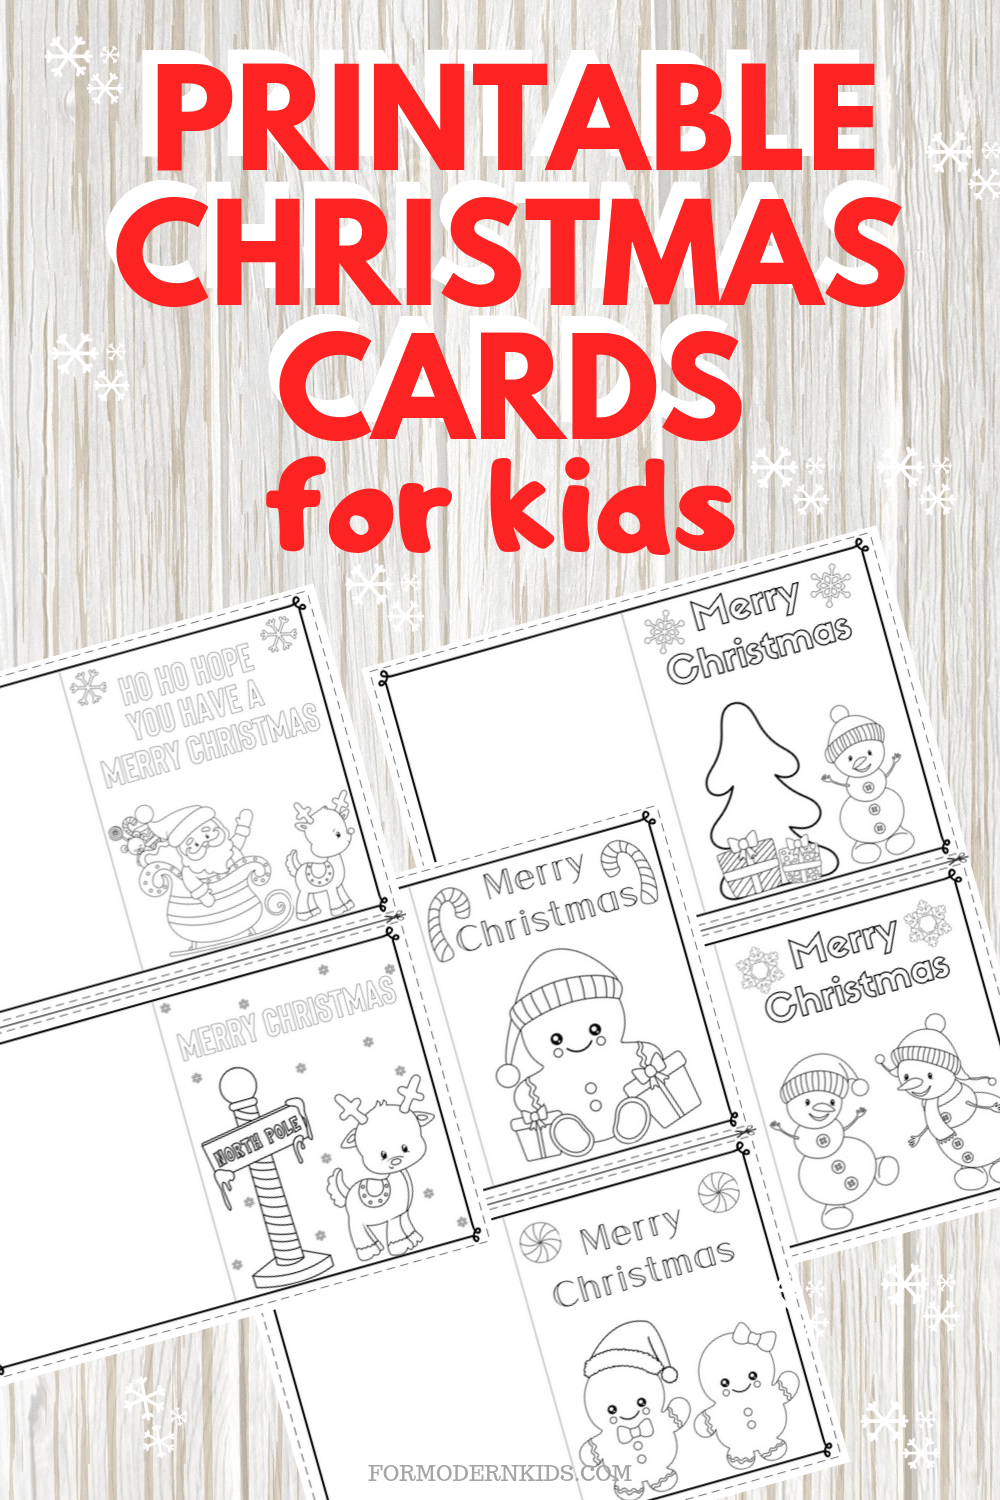 Printable Christmas Cards for Kids from For Modern Kids